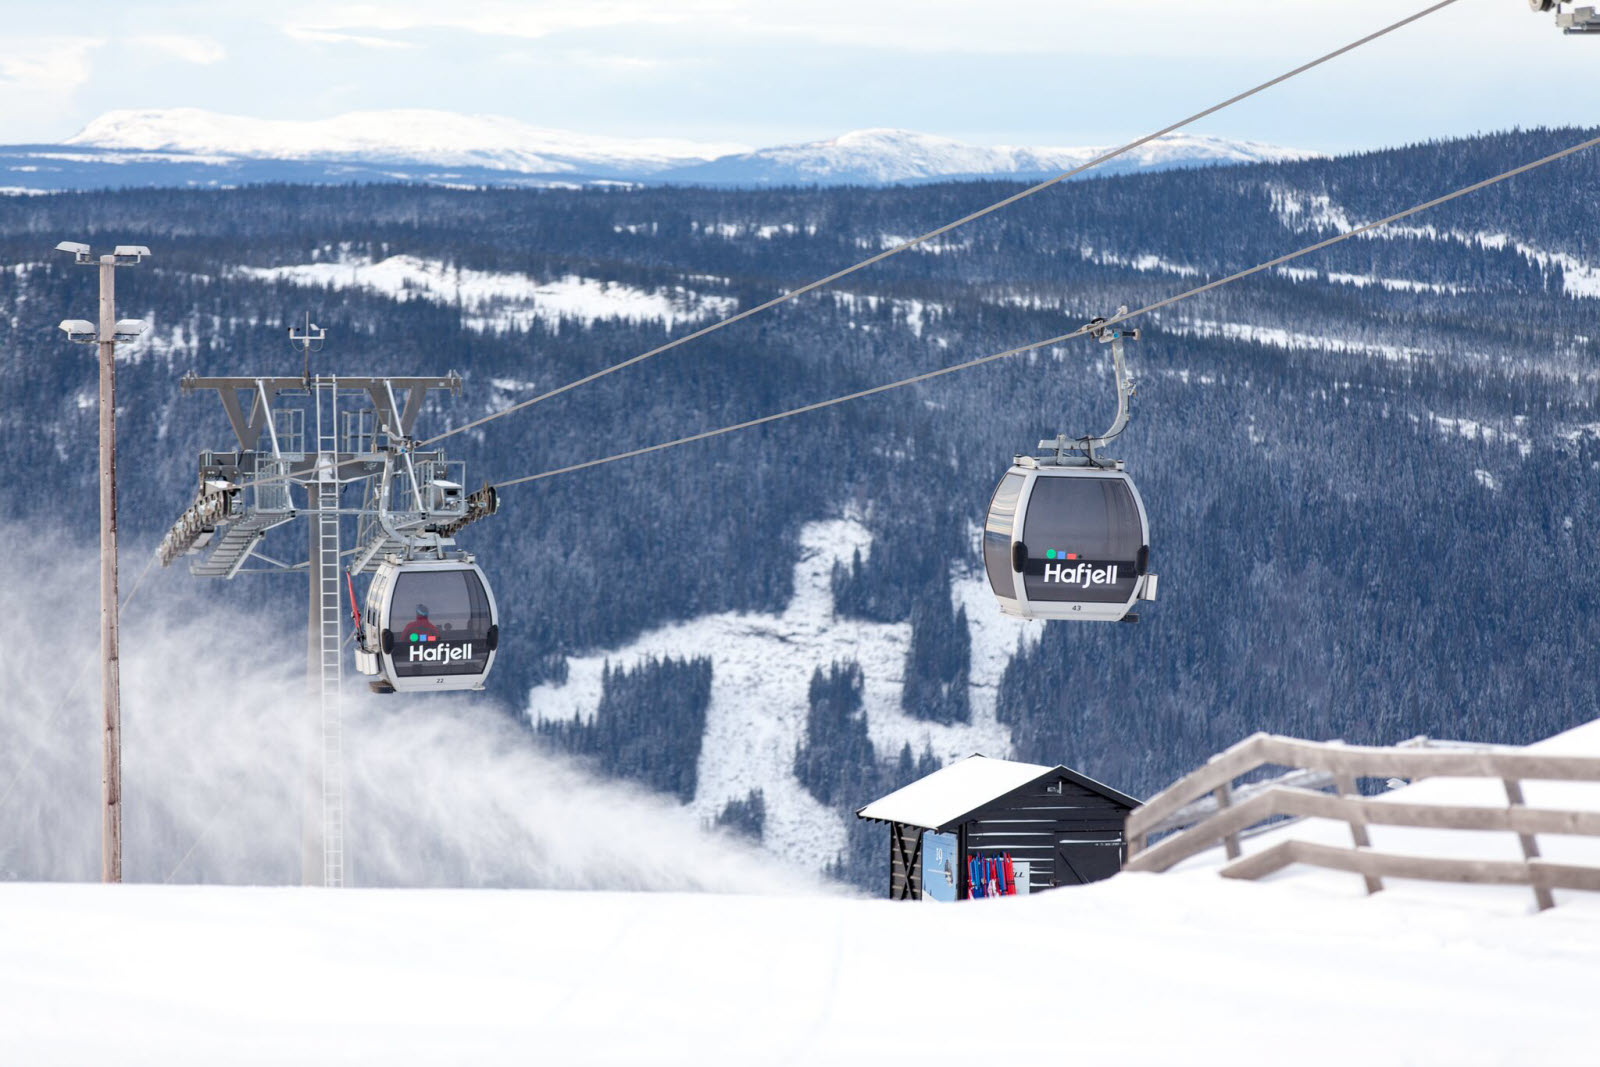 Hafjell_16_12_15-9_preview.jpg